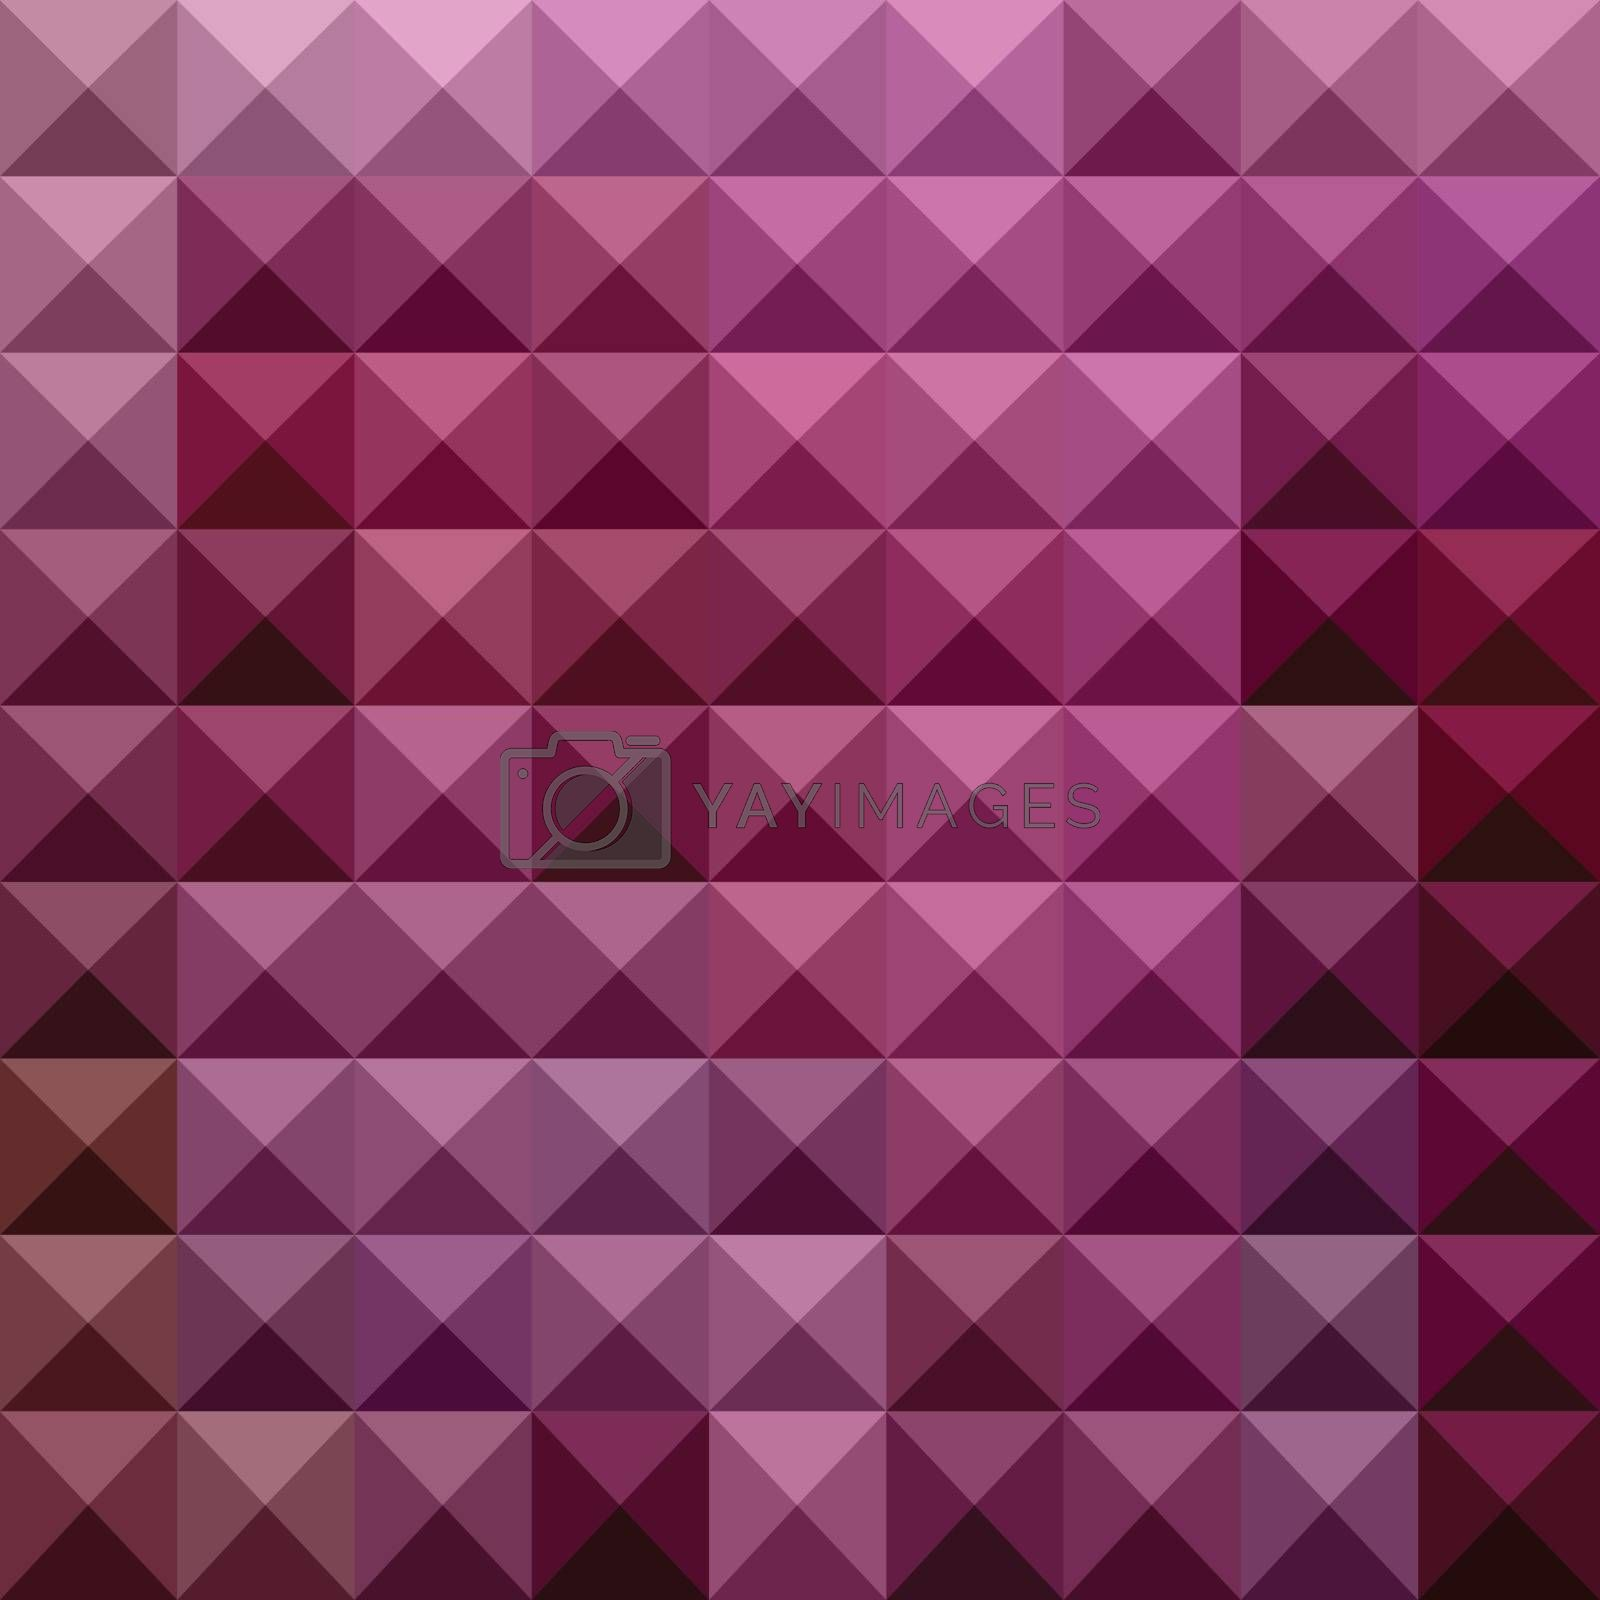 Low polygon style illustration of a byzantium purple abstract geometric background.